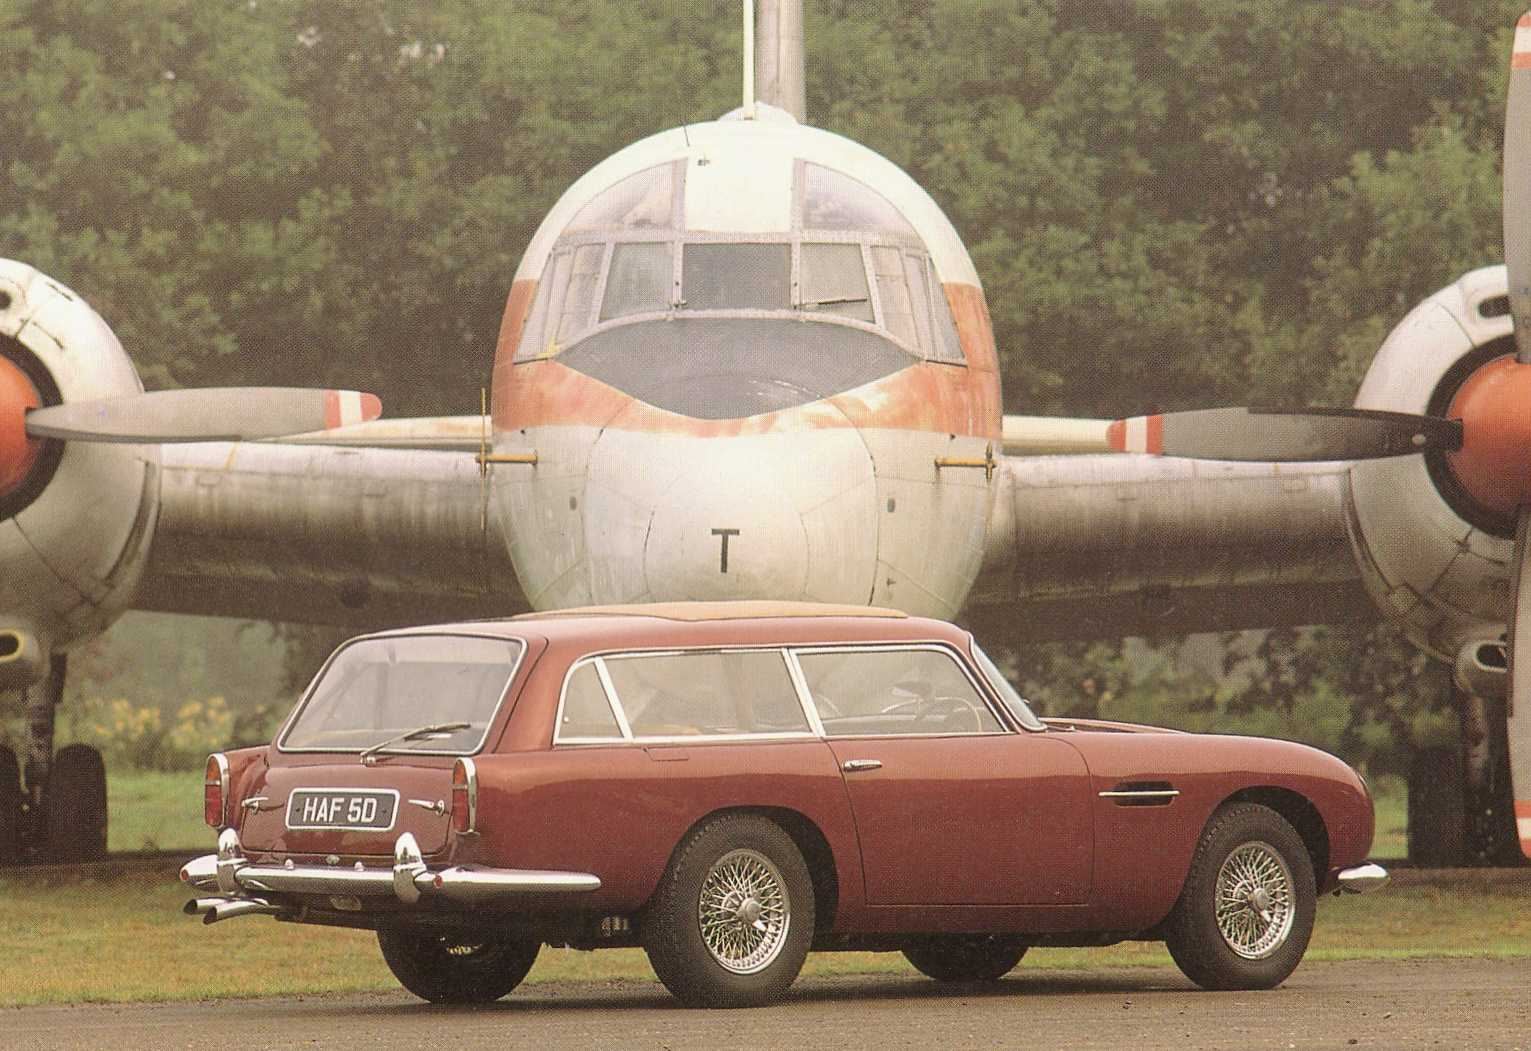 aston martin scrapbook - db6 shooting brakes